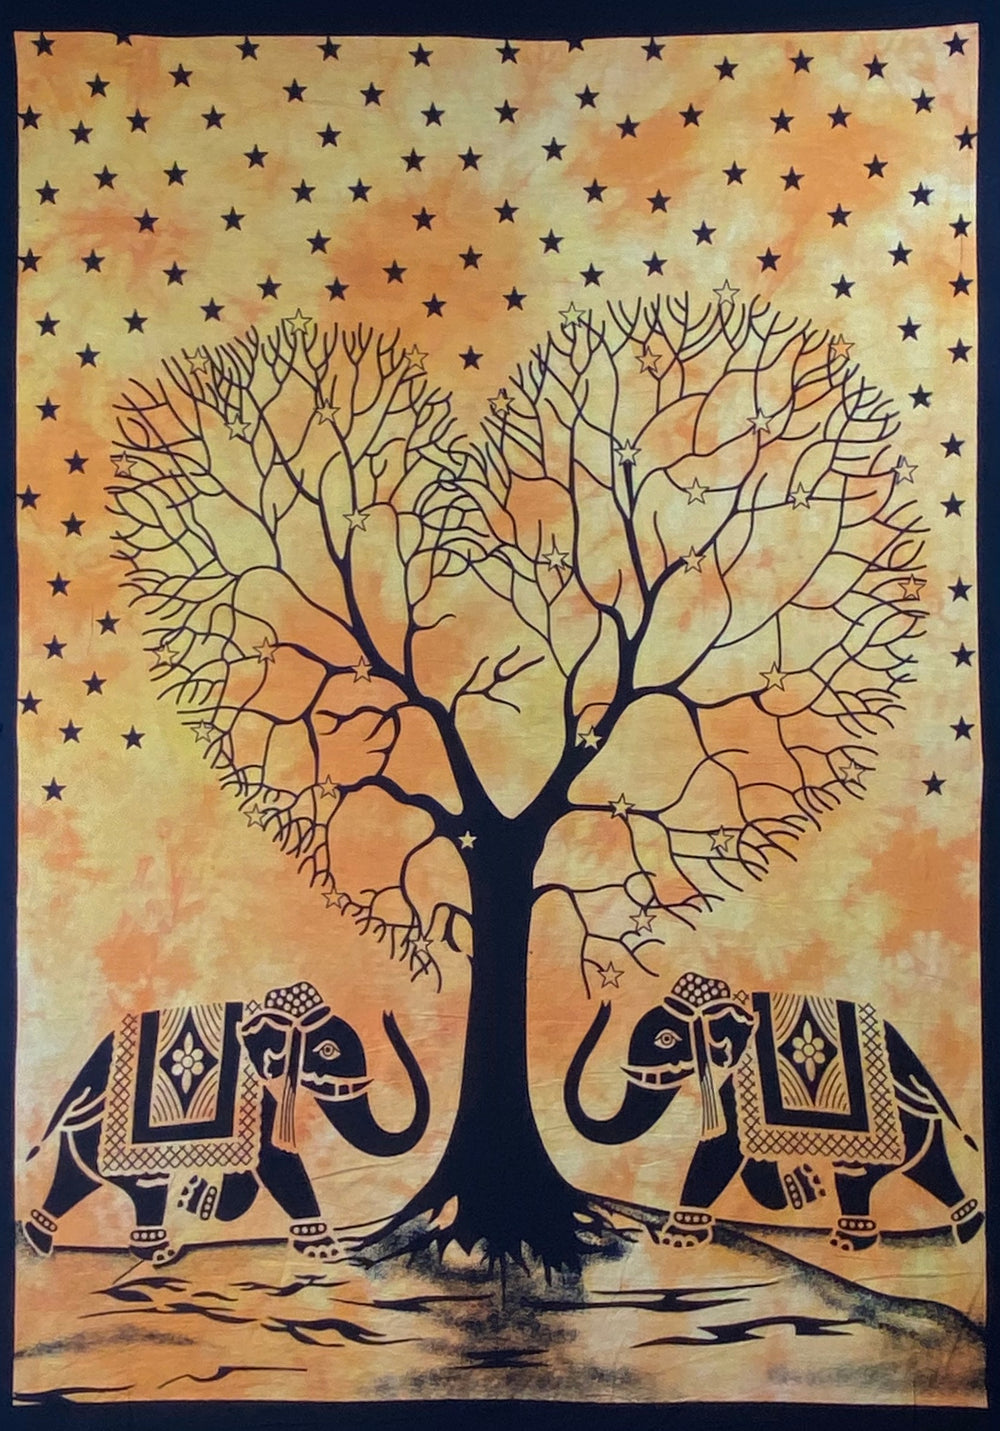 HEART SHAPE TREE OF LIFE TAPESTRY POSTER SIZE YELLOW